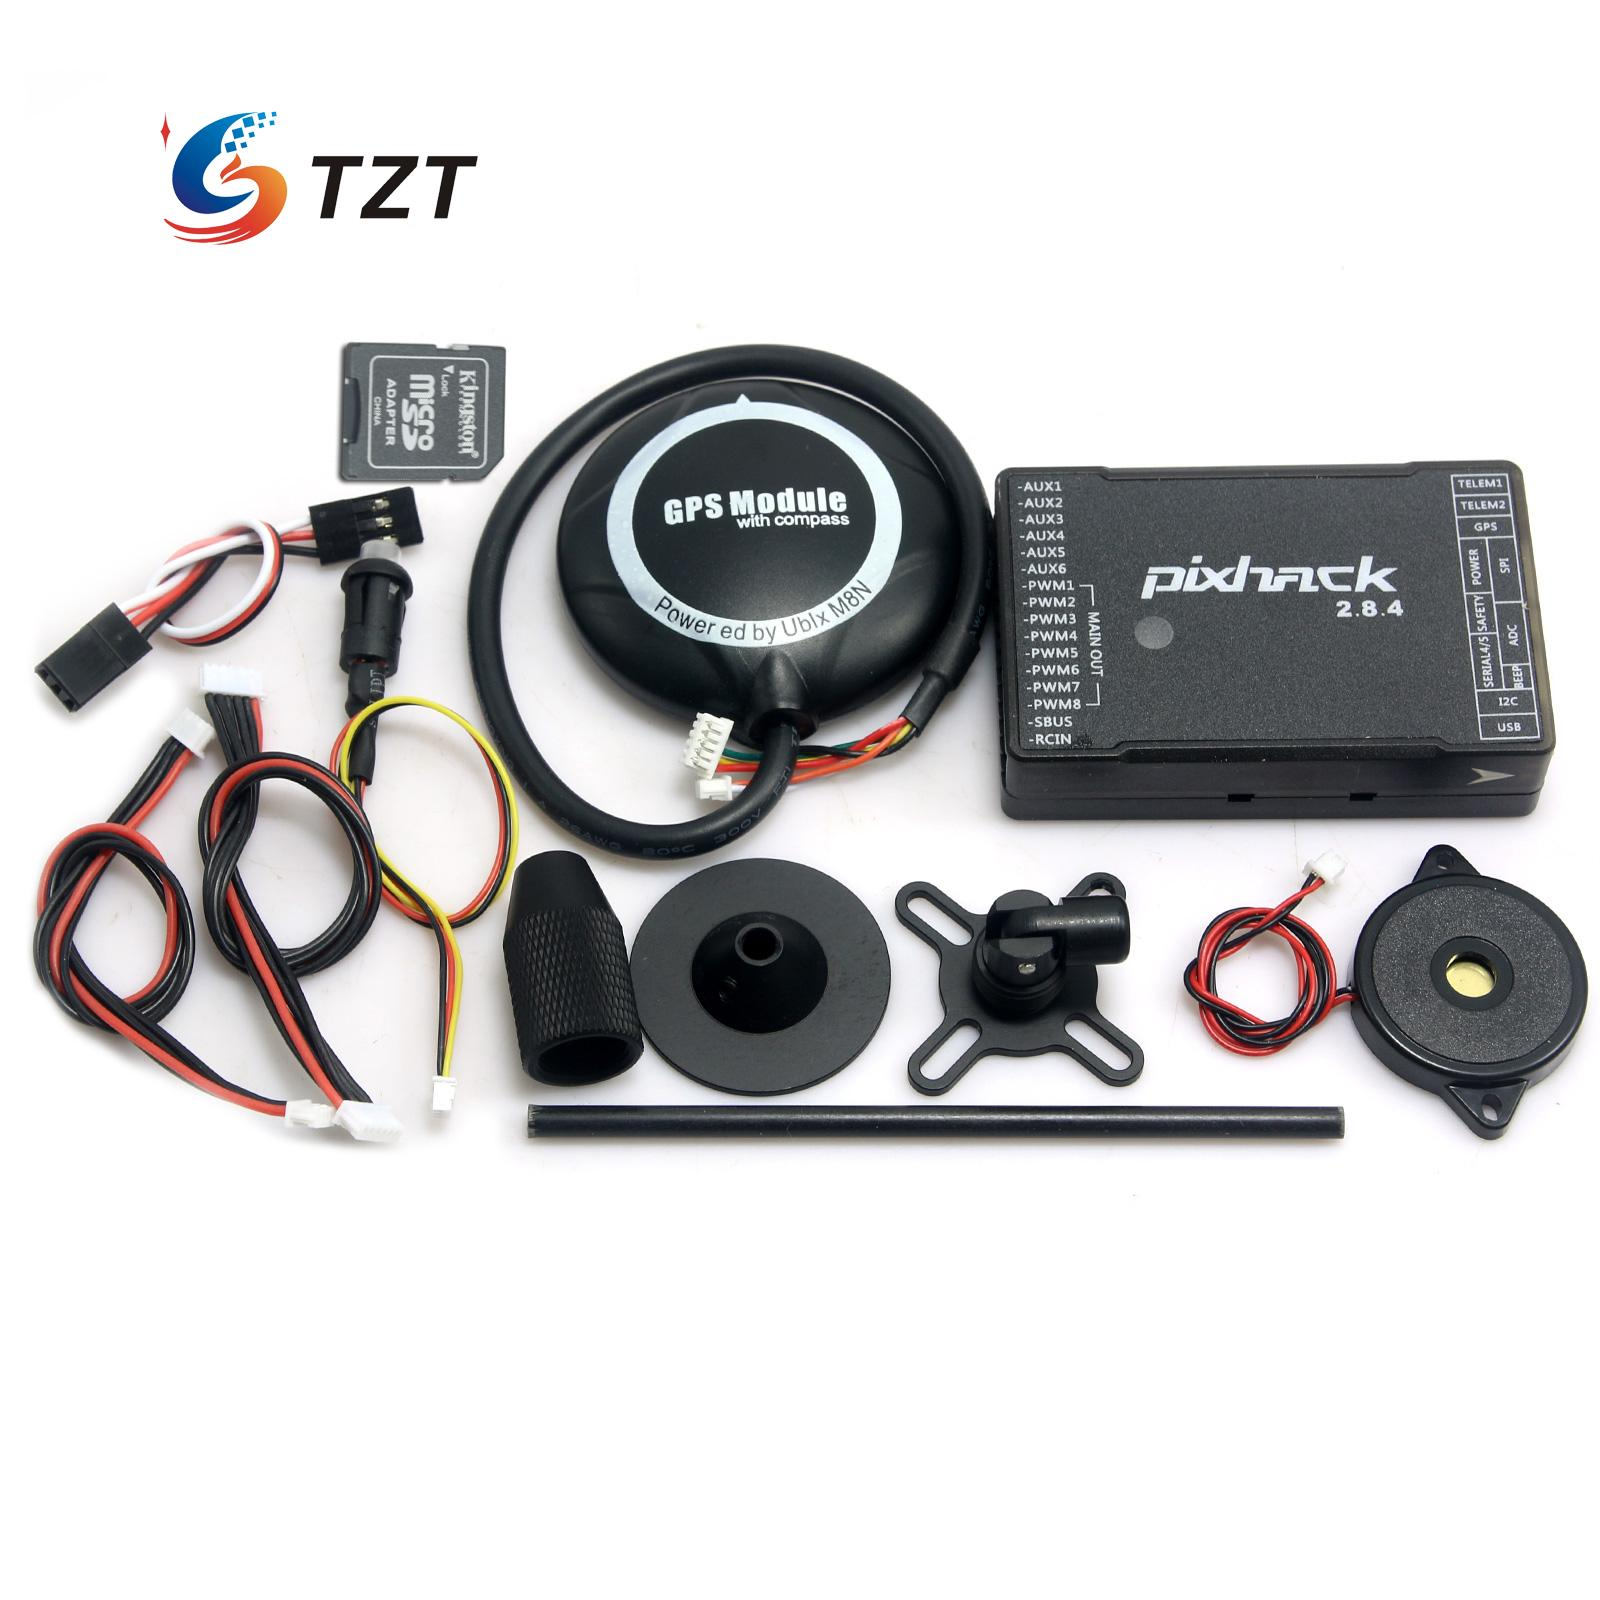 FPV Pixhack 2.8.4 Flight Controller 32Bit Open Source Based on Pixhawk+Ublox M8N GPS with Compass for Drone Quadcopter foldable bracket holder ublox m8n gps compatible with naza lite v1 v2 flight controller